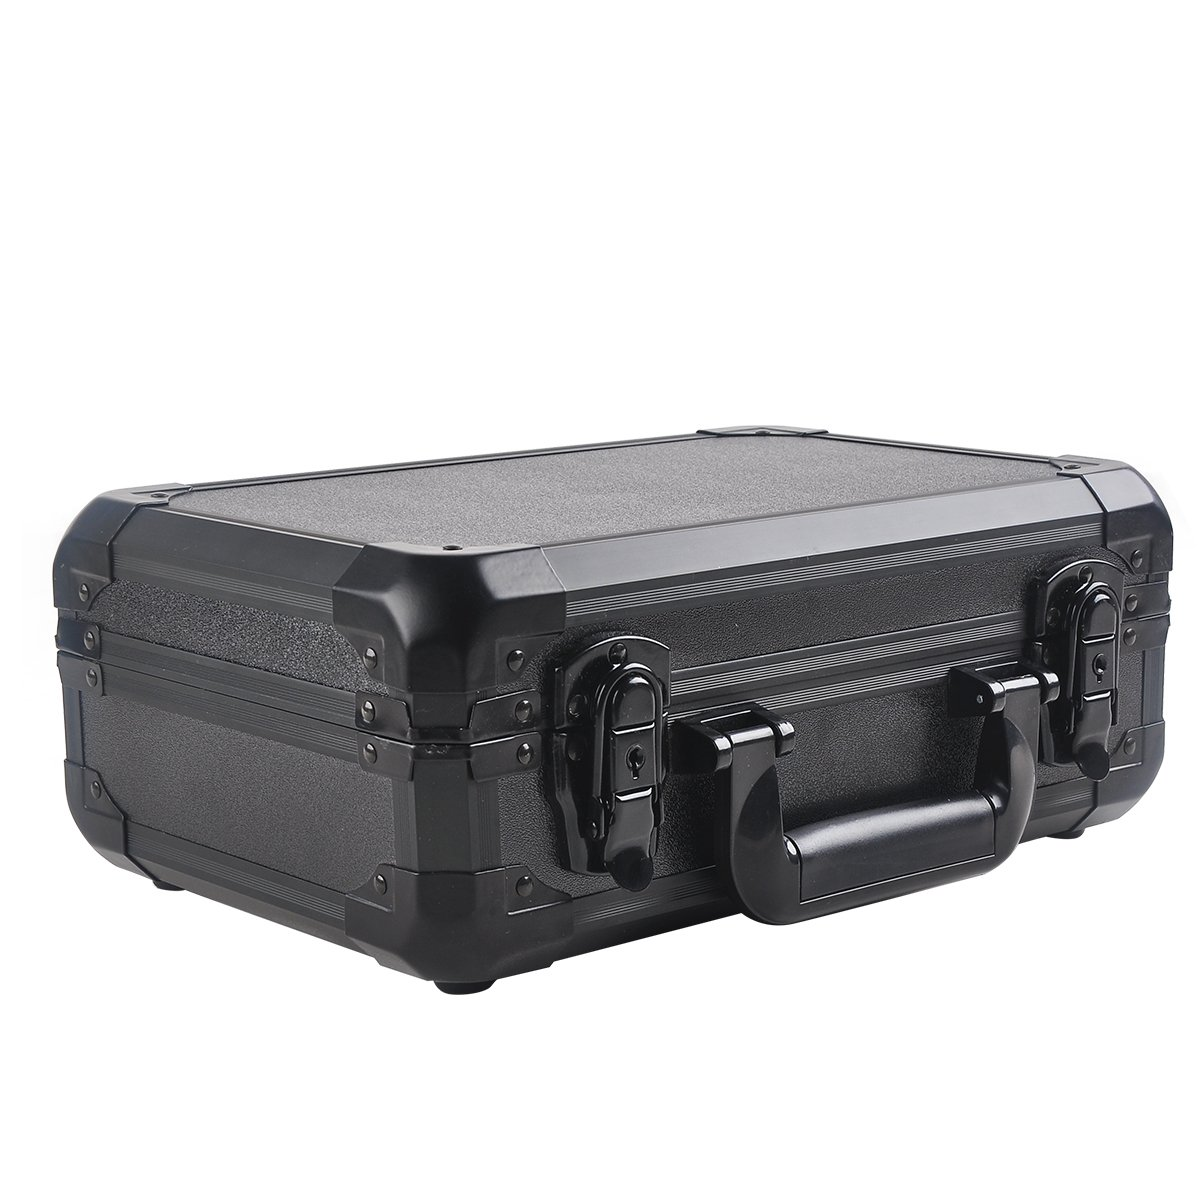 Hobby-Ace DJI Spark Drone Carrying Case by Travel Storage Case Bag fit for Spark Accessories Remote Controller and 3 Batteries,Propellers,Battery Charger and other accessories by Snotra Shop (Image #4)